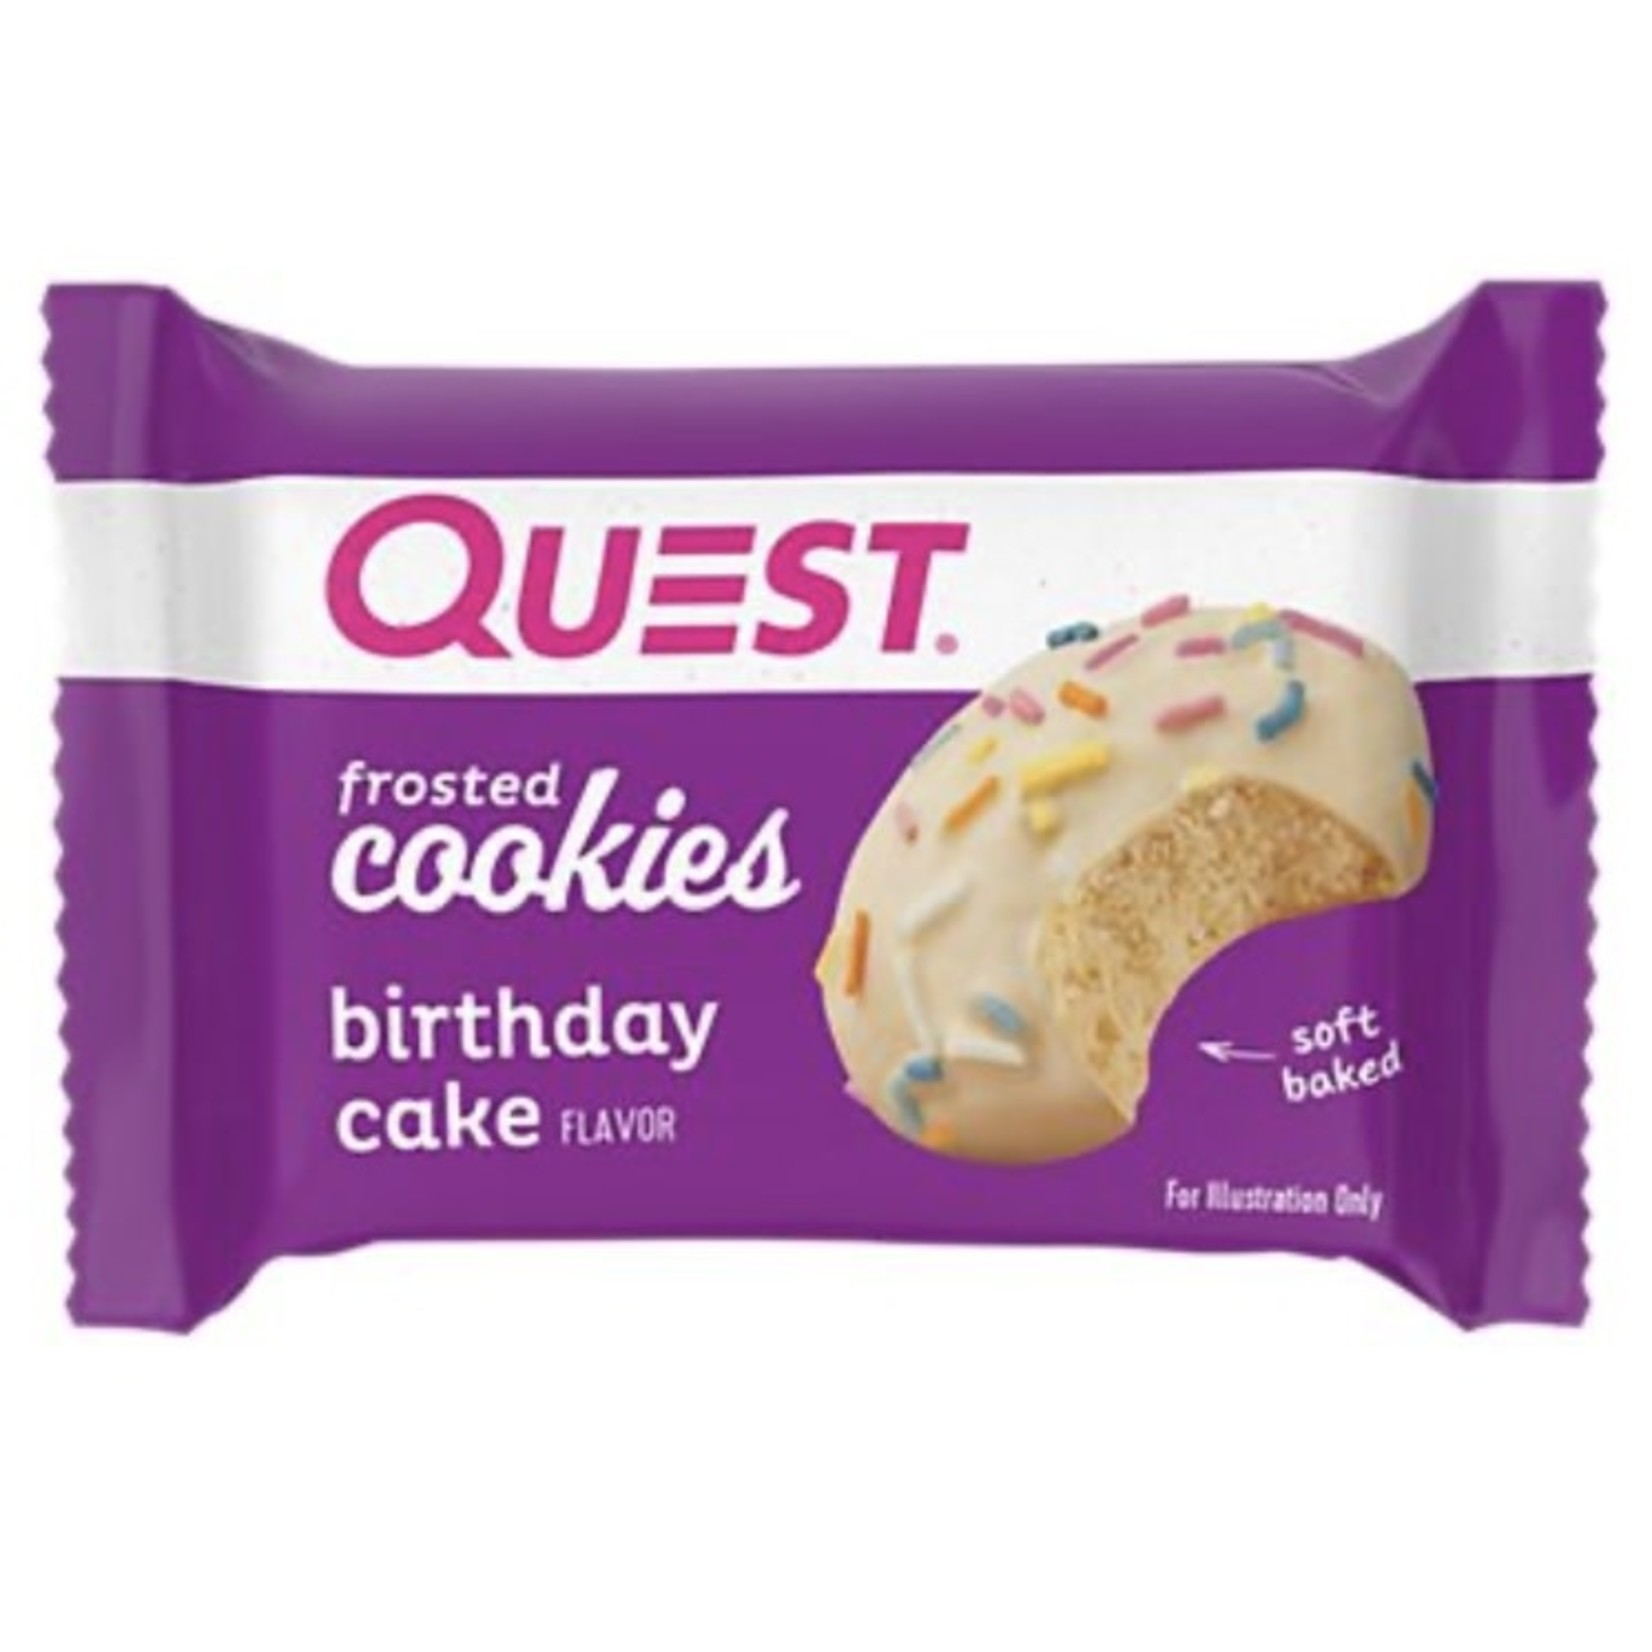 Quest Quest Frosted Cookie Birthday Cake